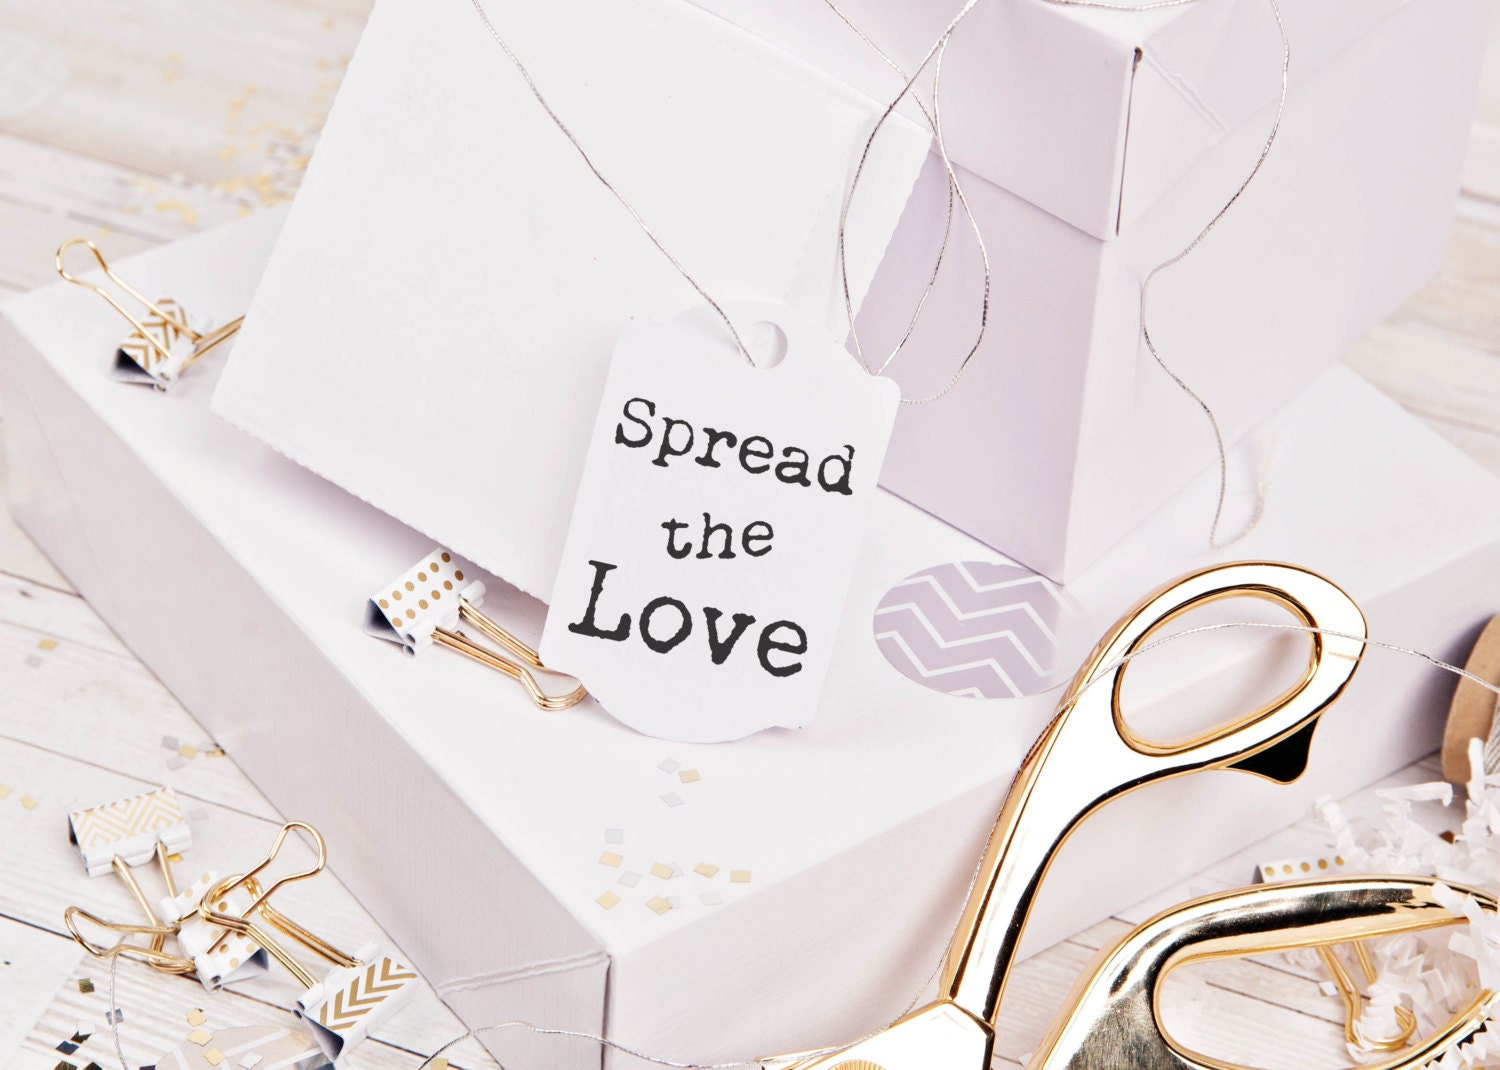 Spread the love custom rubber stamp great for DIY wedding